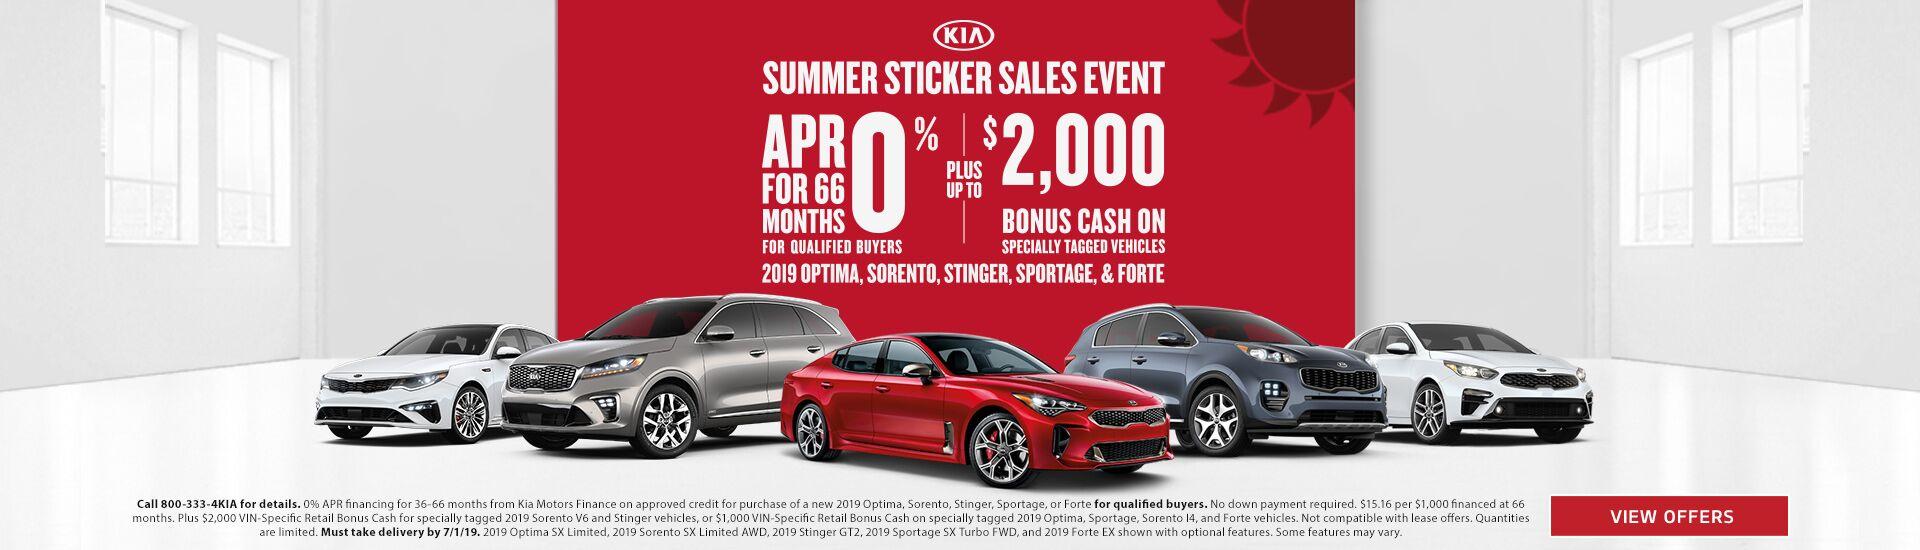 Kia Summer Sticker Sales Event